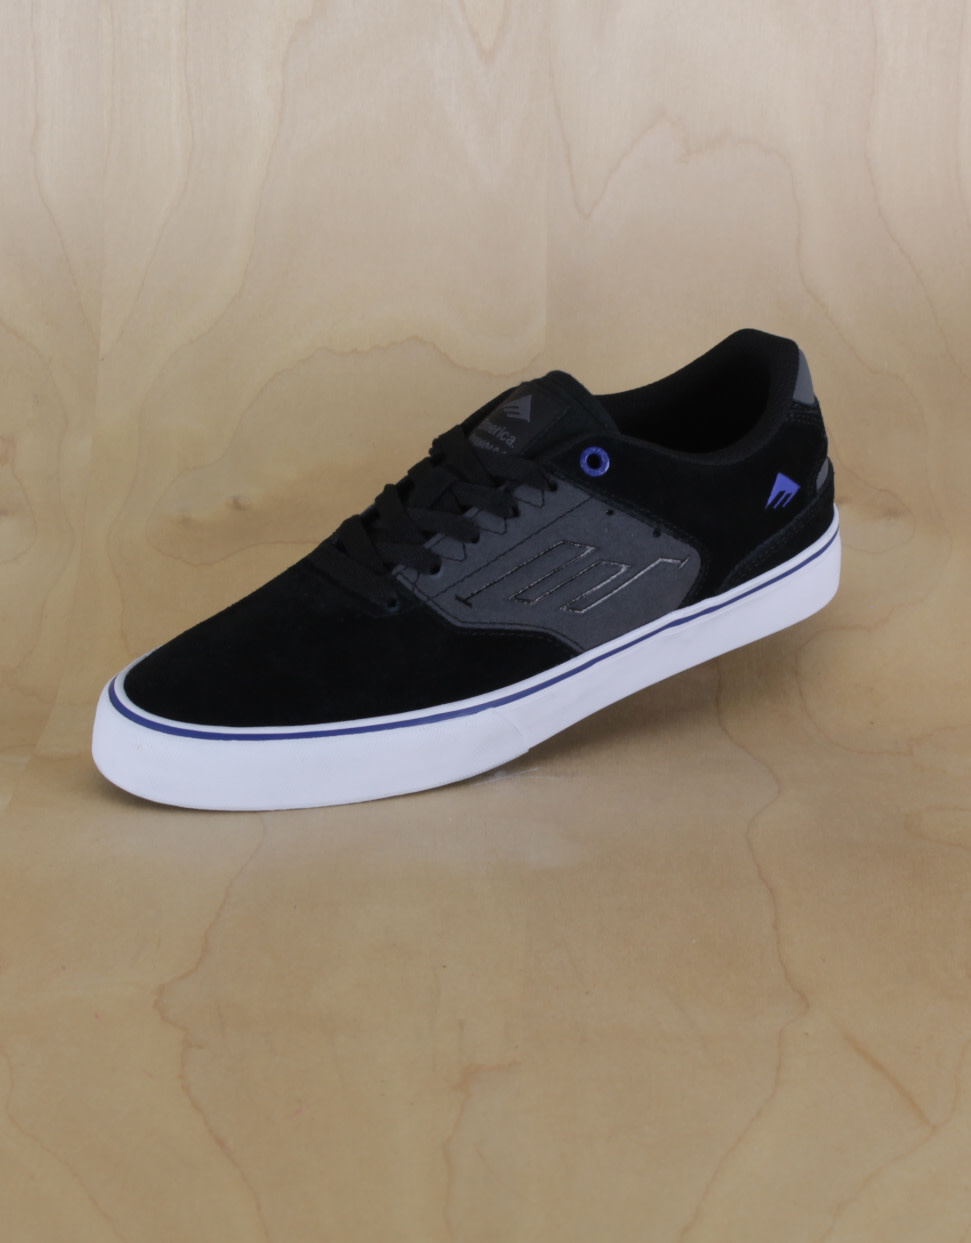 Emerica Emerica - Reynolds Low Vulc Black/Grey/Blue